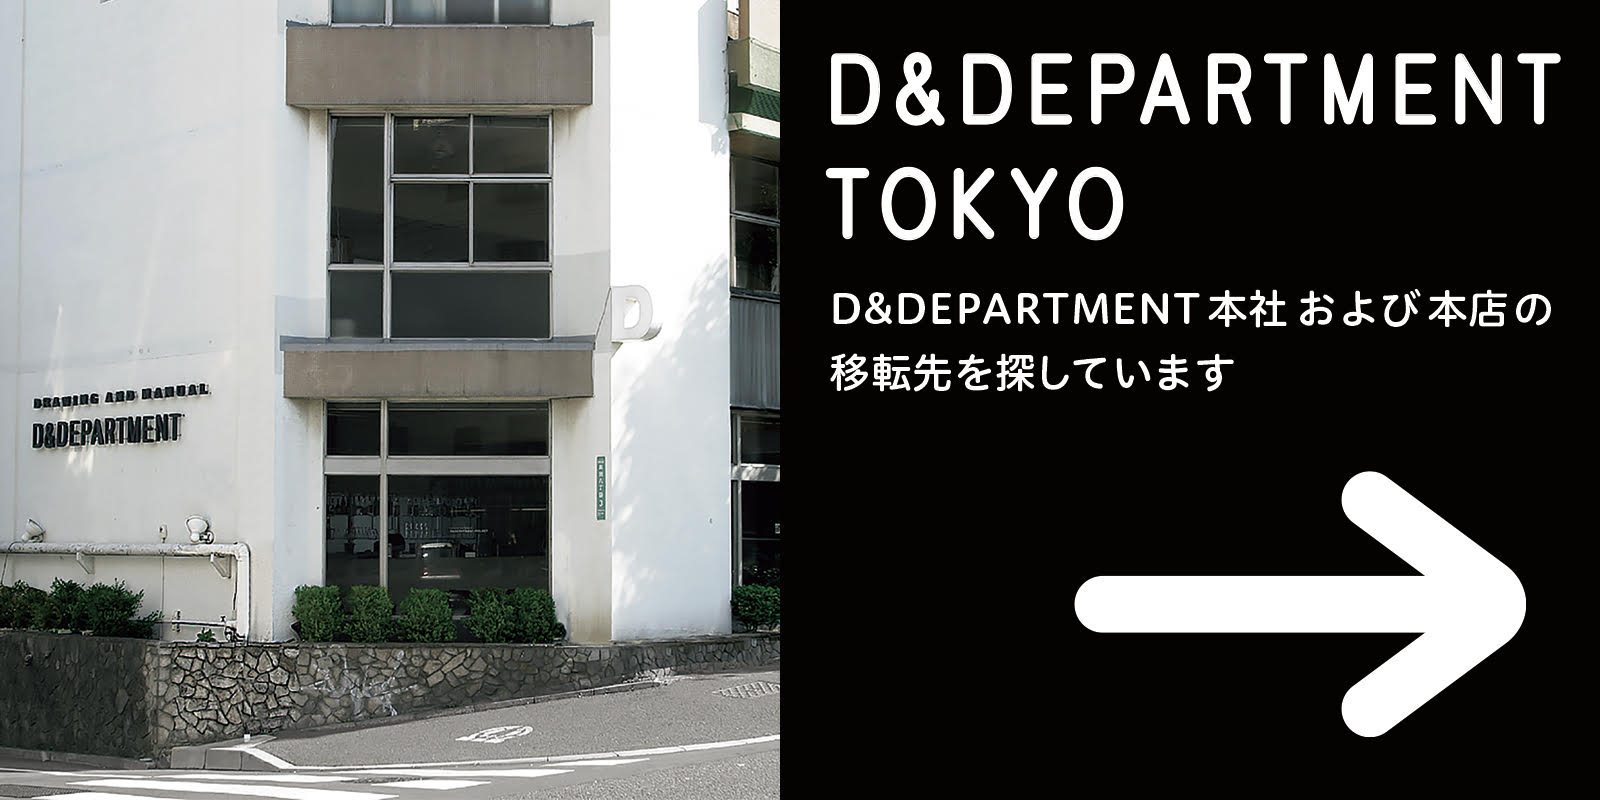 D&DEPARTMENT TOKYO MOVING OUT